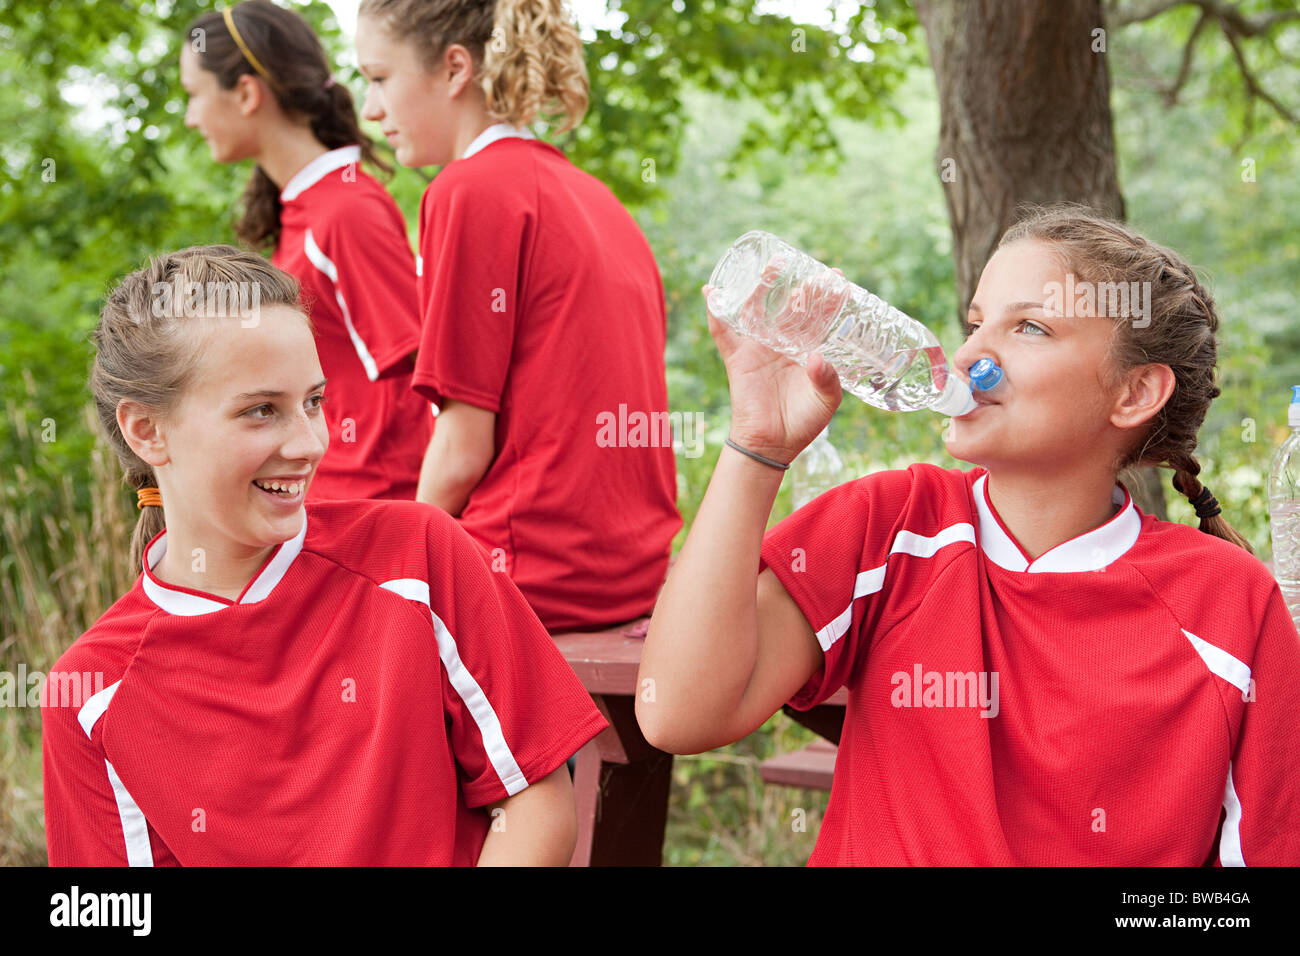 Girl soccer players drinking water - Stock Image